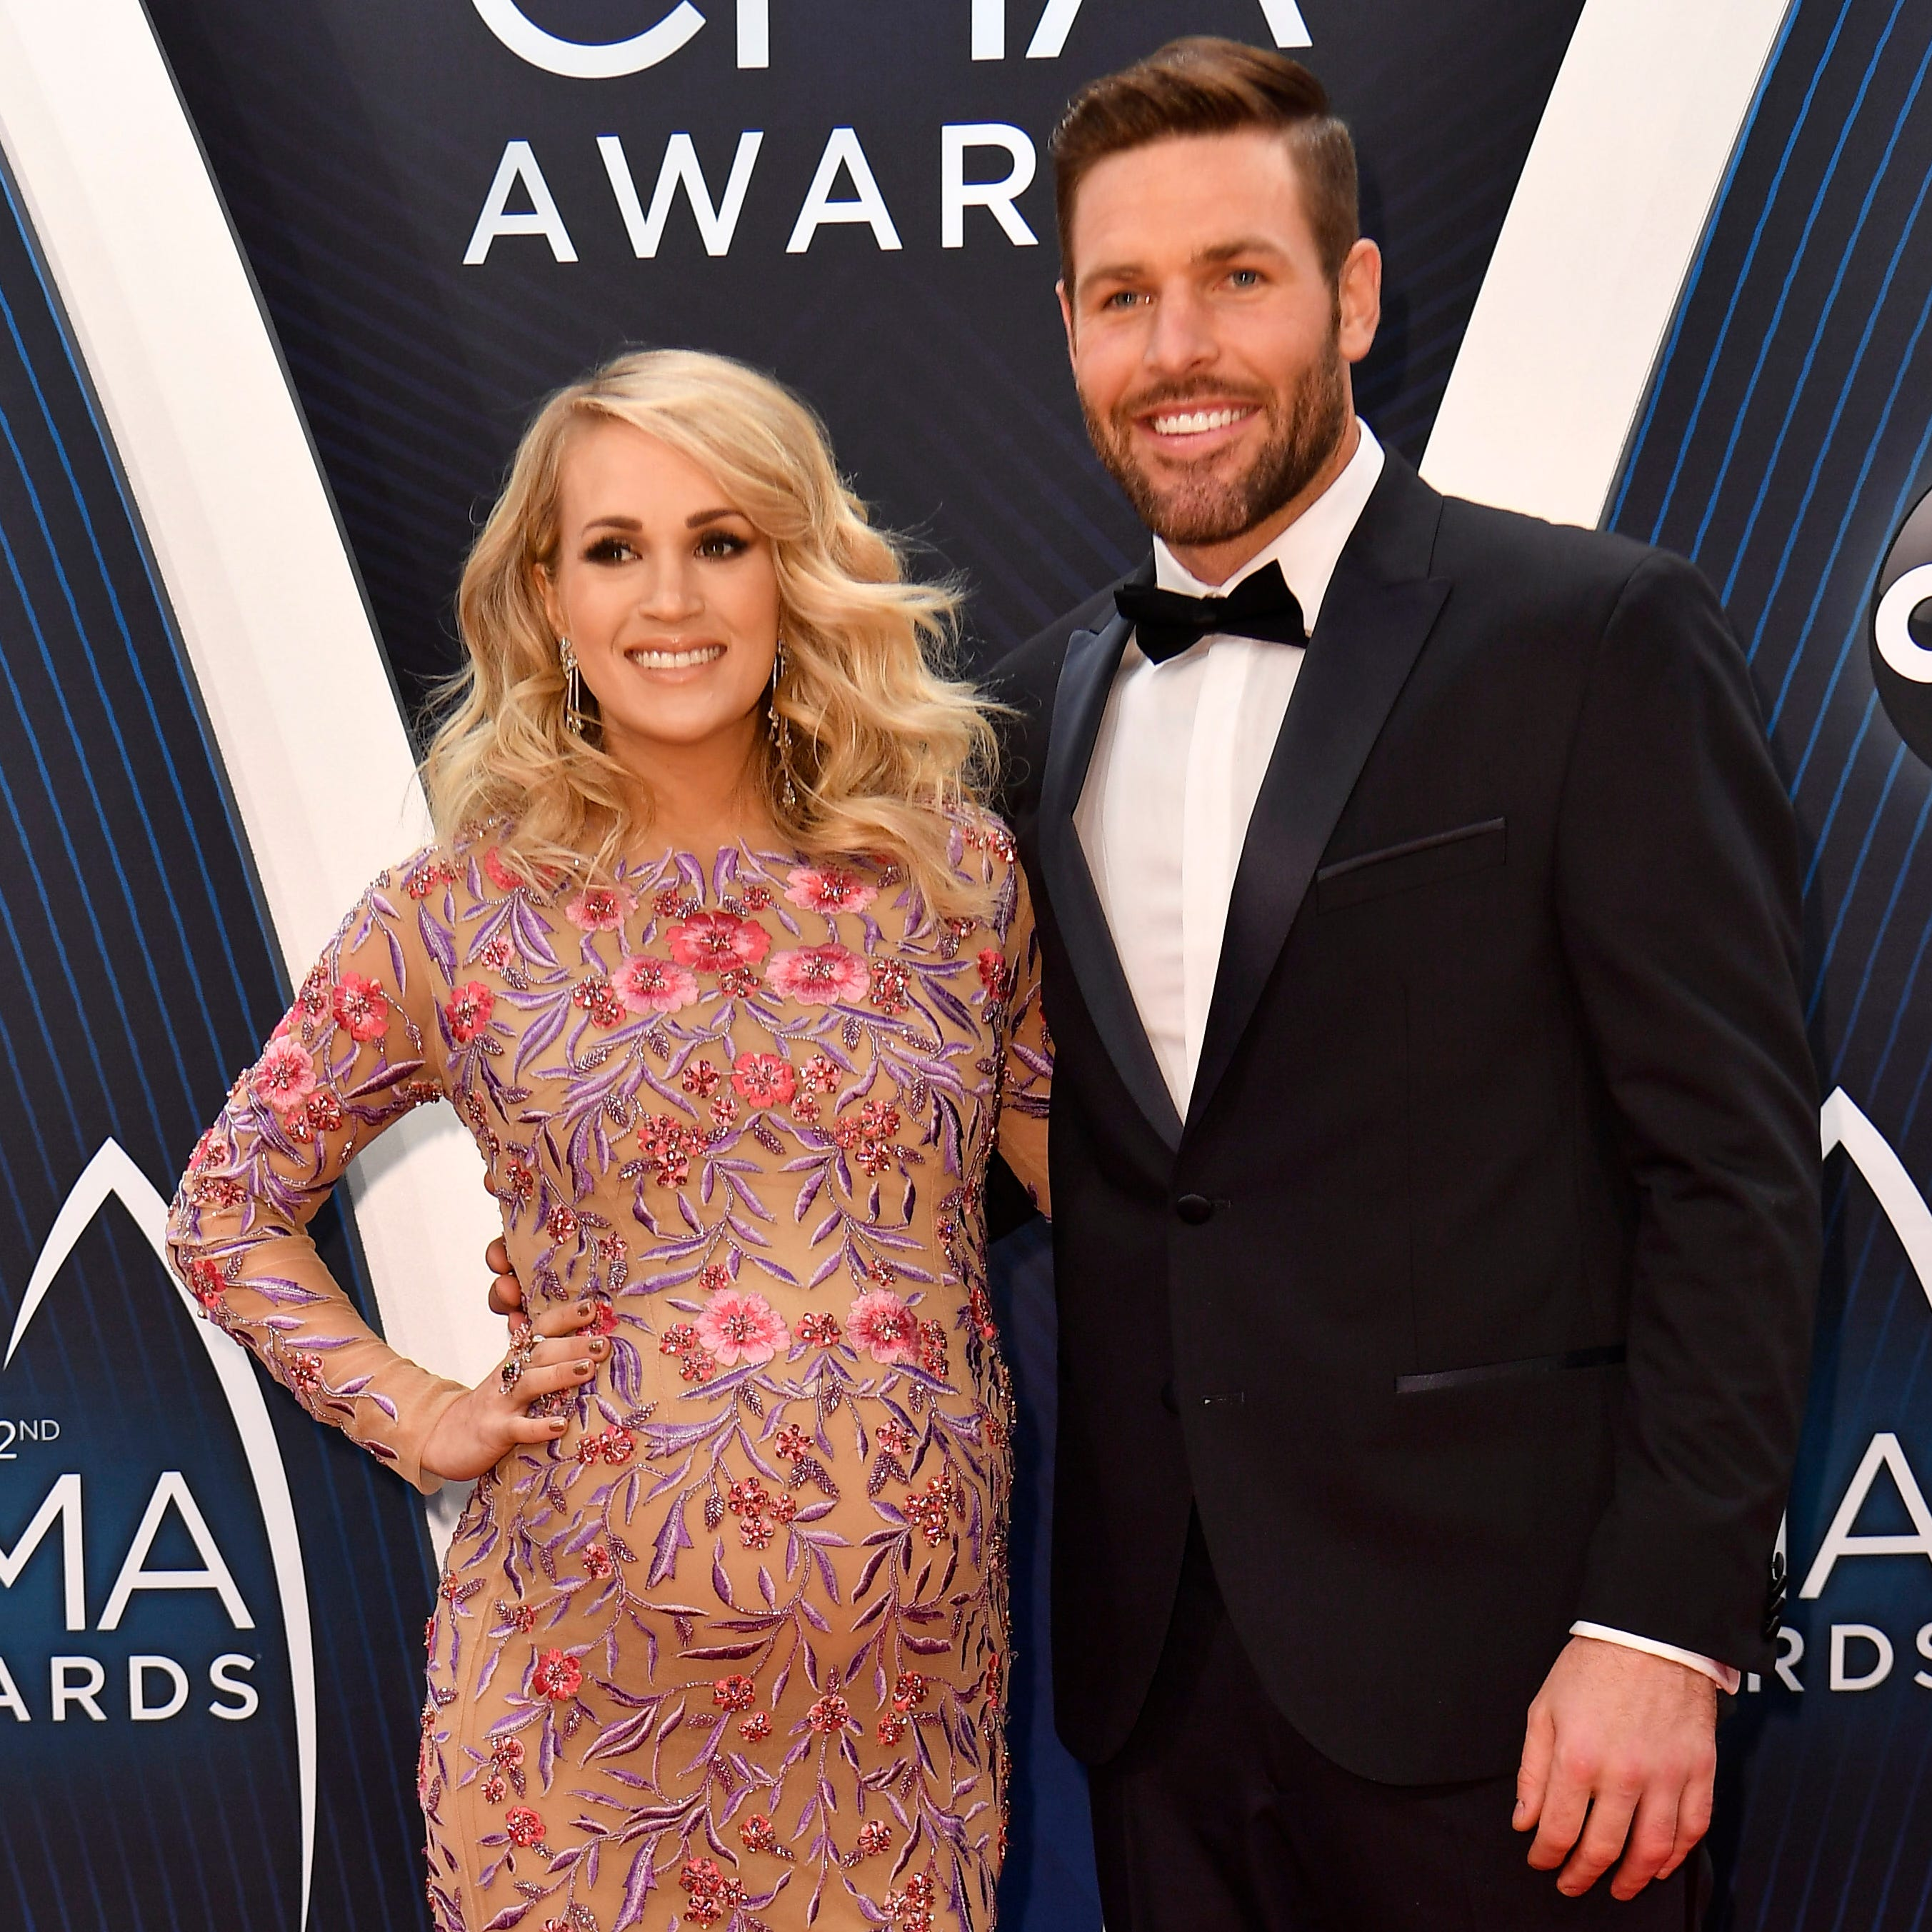 Get a first look at the CMA Awards with red carpet arrivals